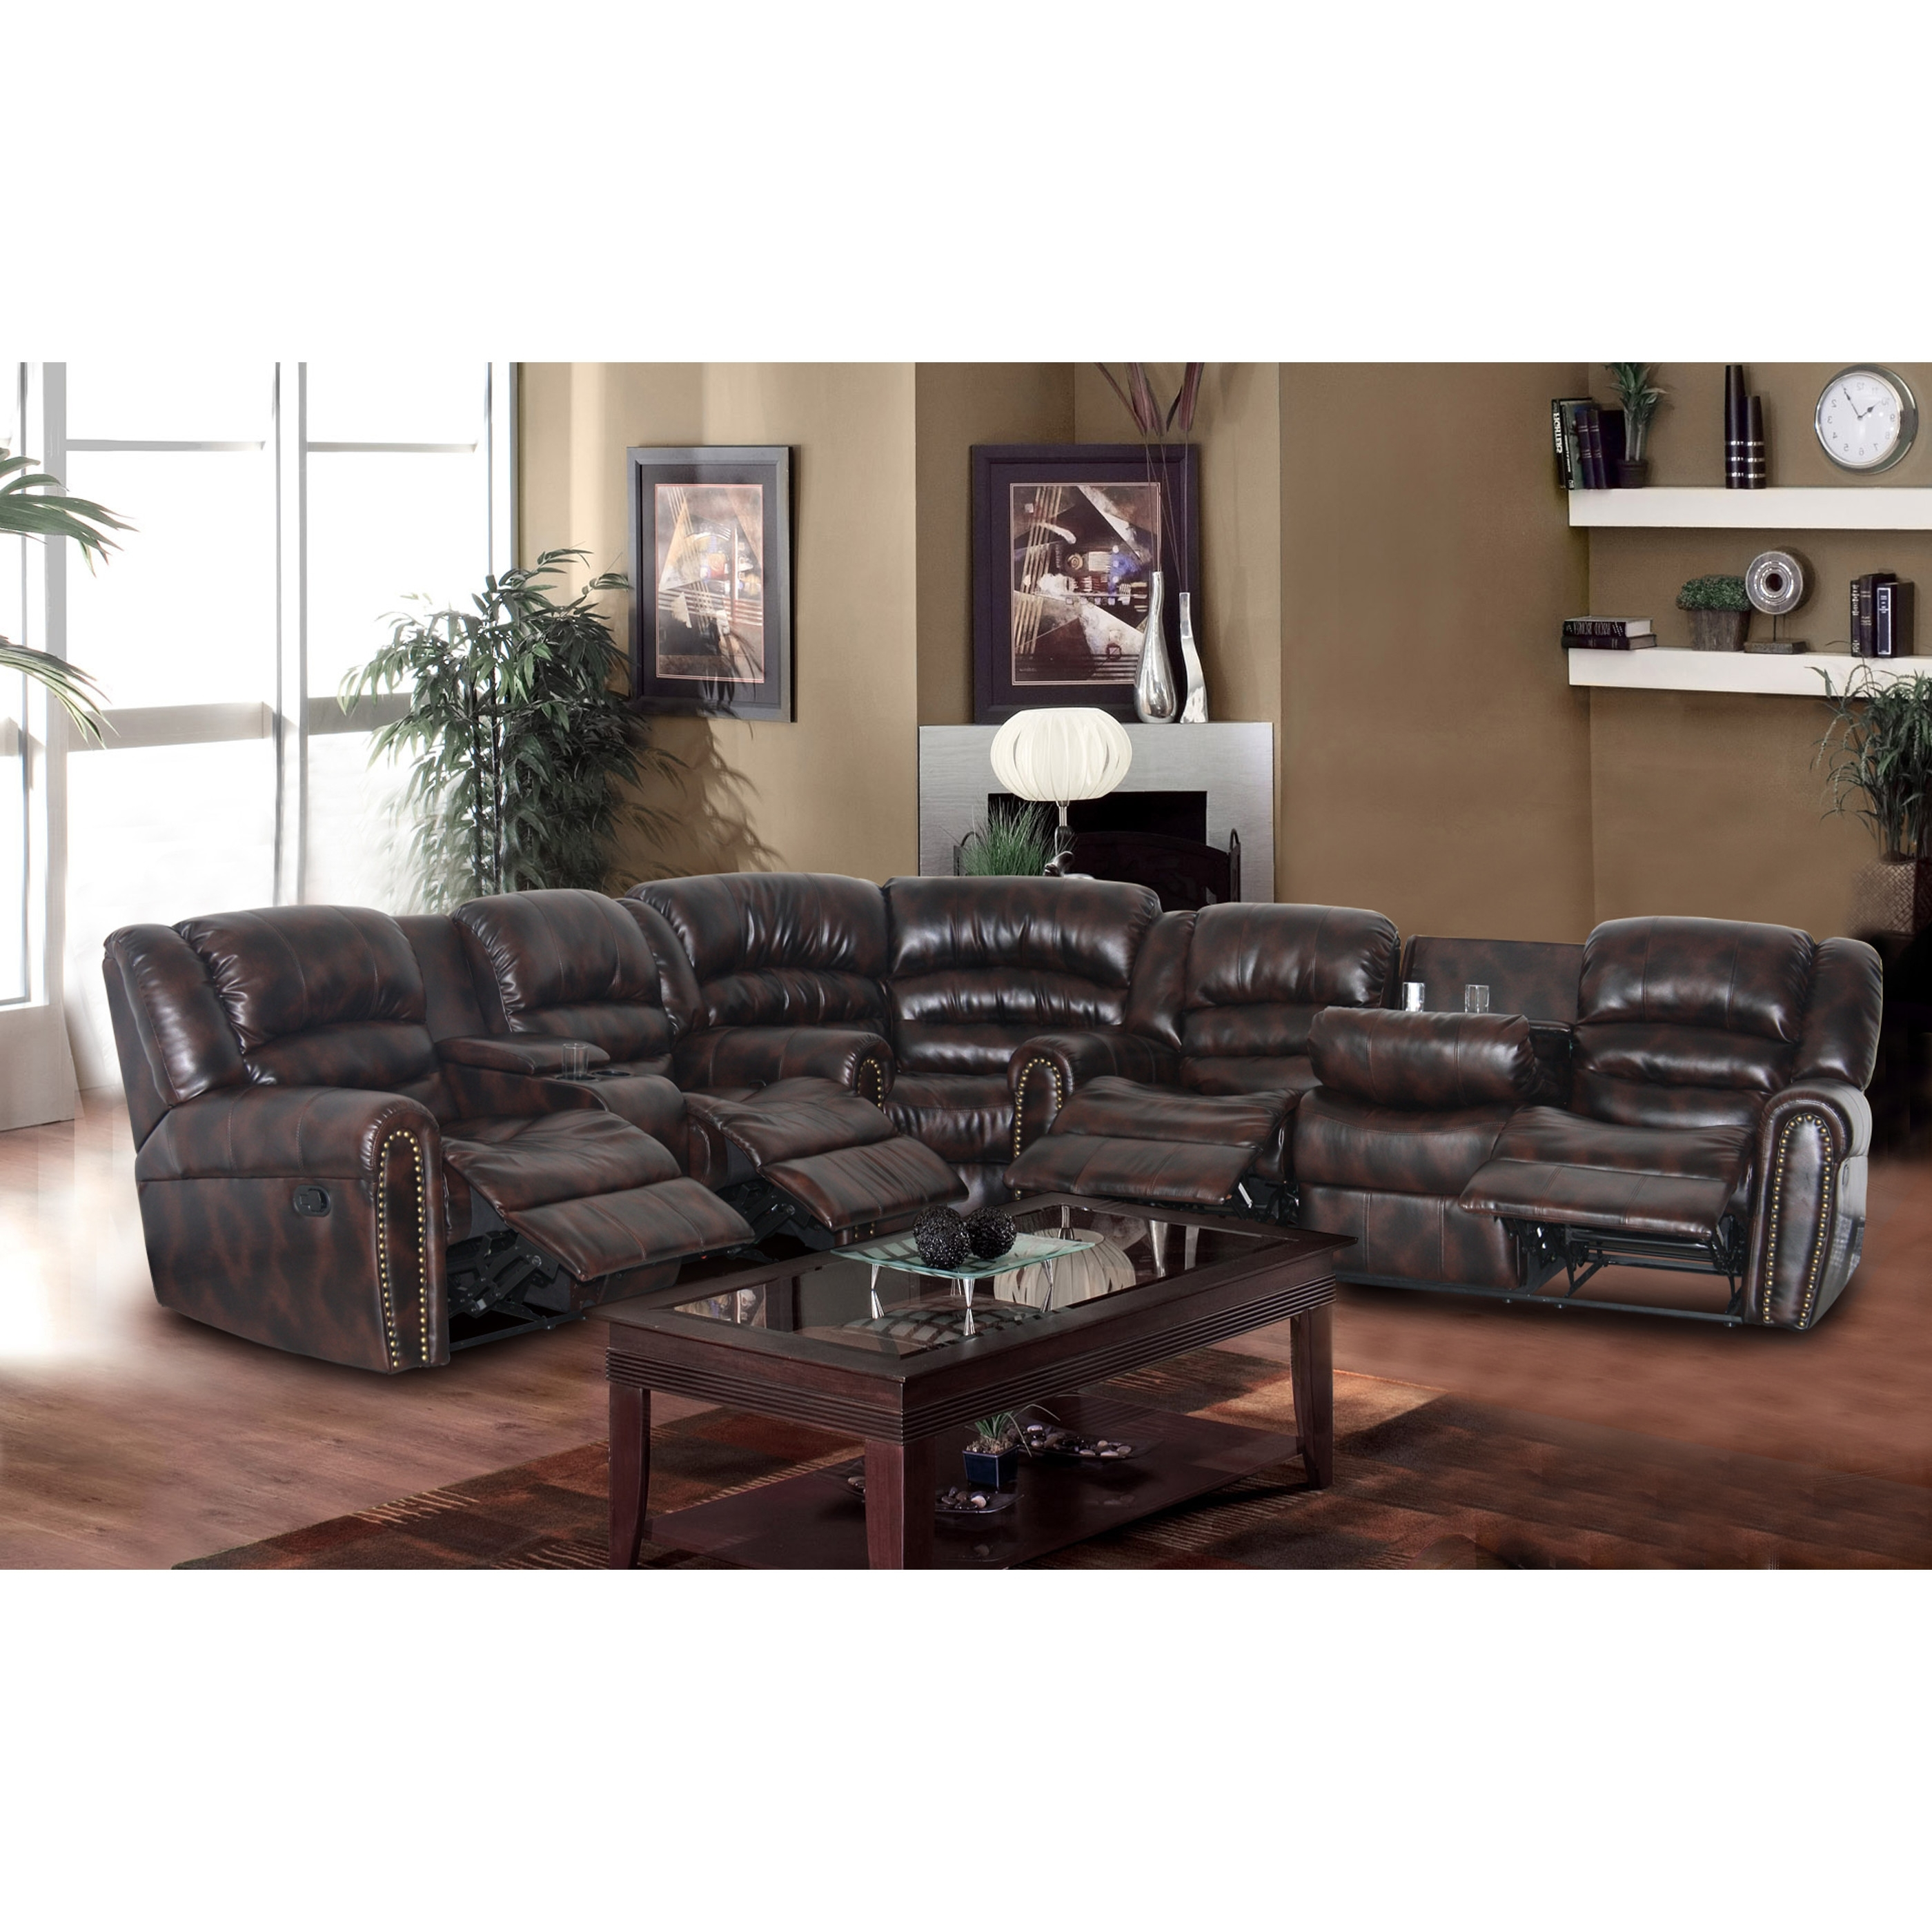 Preferred Sectional Sofas In Greensboro Nc Throughout Ashley Furniture Sectional Sofas Best Attractive Home Design (View 12 of 20)